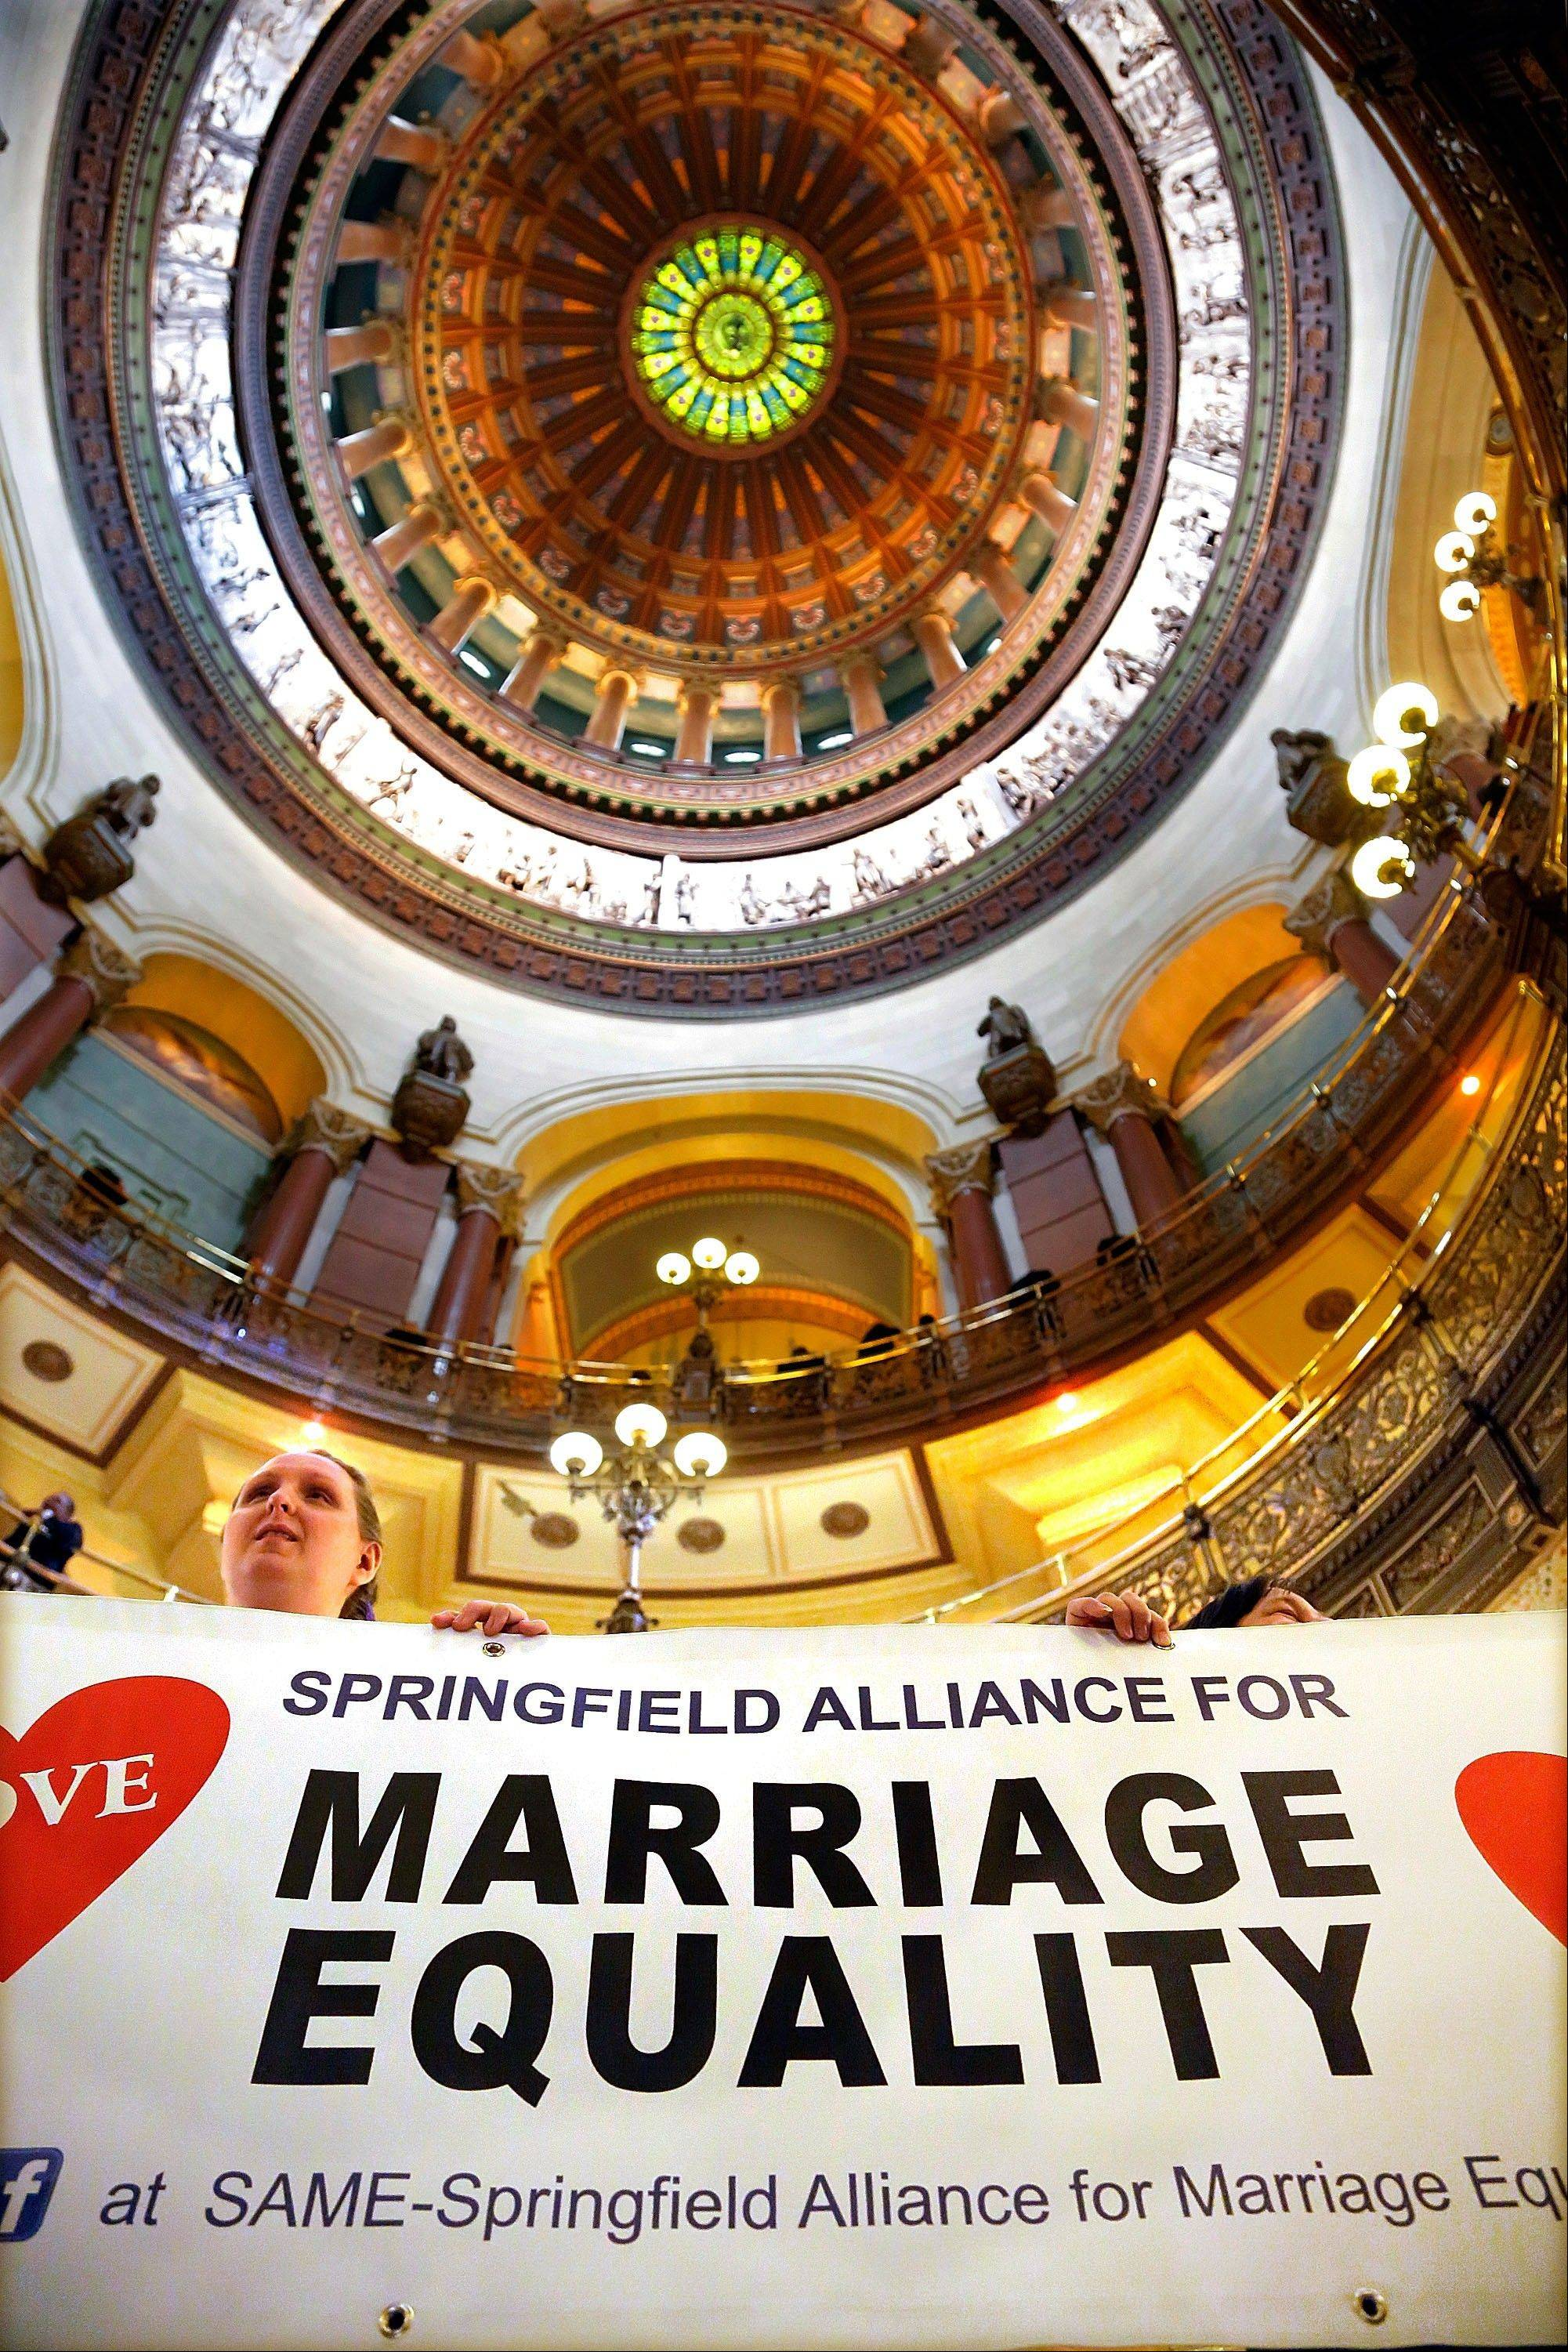 Supporters of same-sex marriage legislation rally in the rotunda at the Illinois State Capitol during the veto session Tuesday in Springfield.